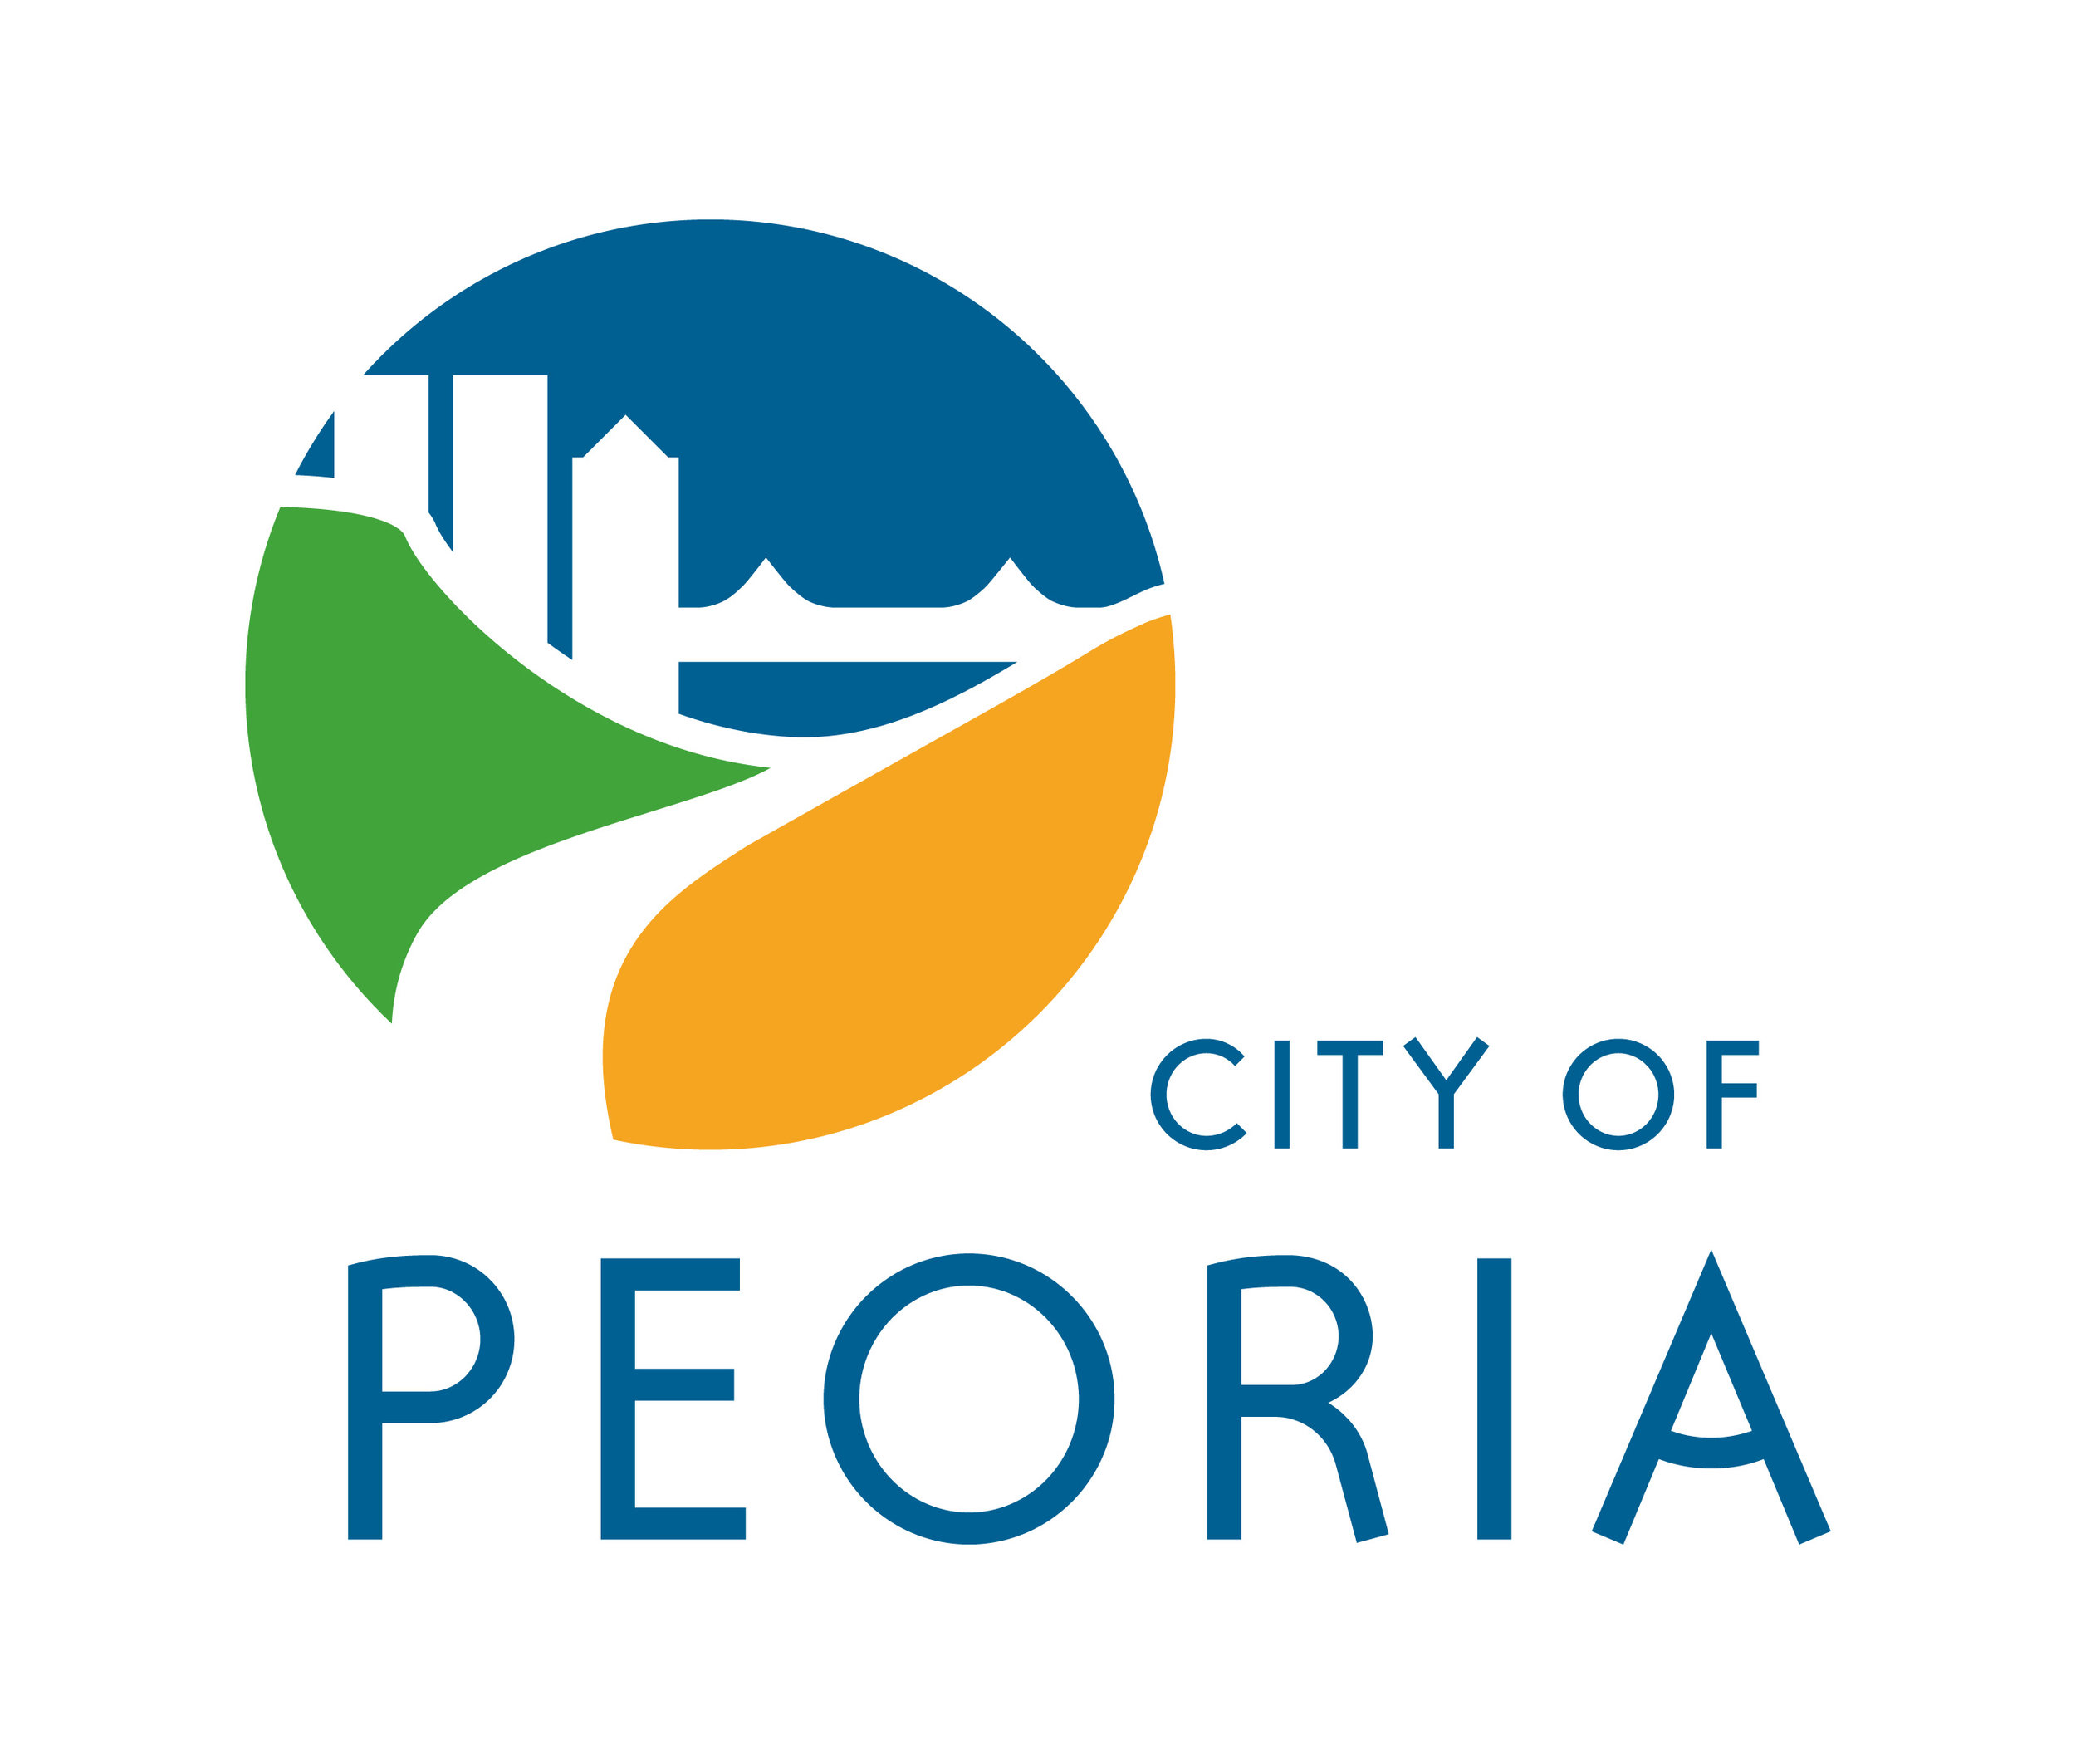 City of Peoria Logo.jpg